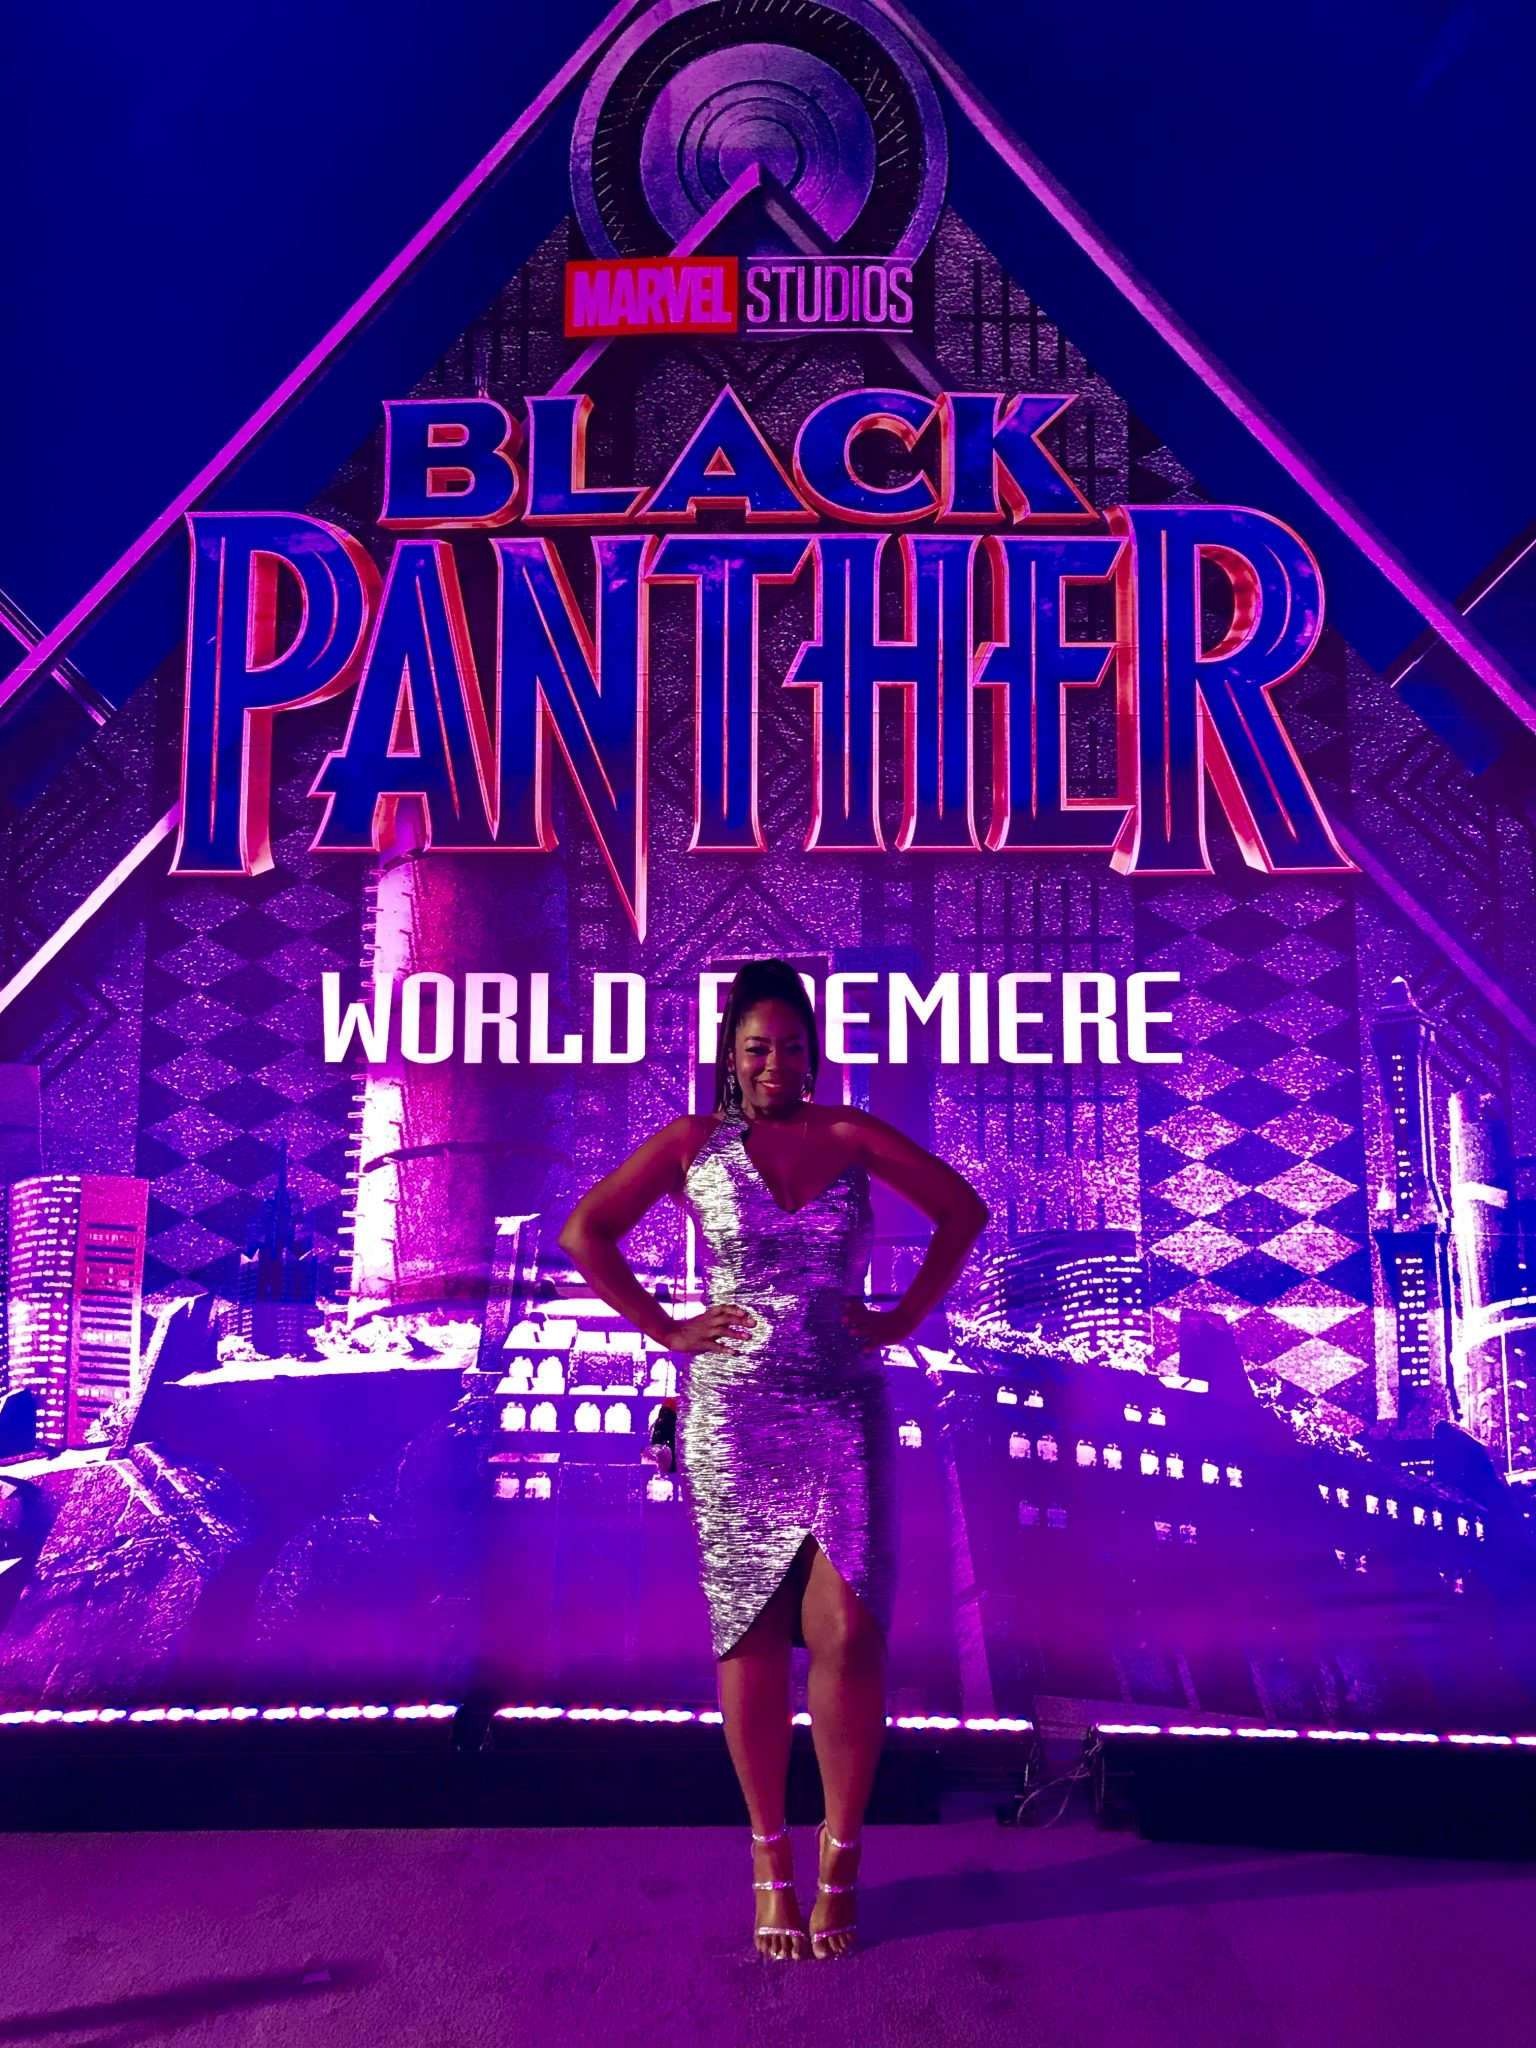 My Black Panther Hollywood World Premiere Red Carpet Experience